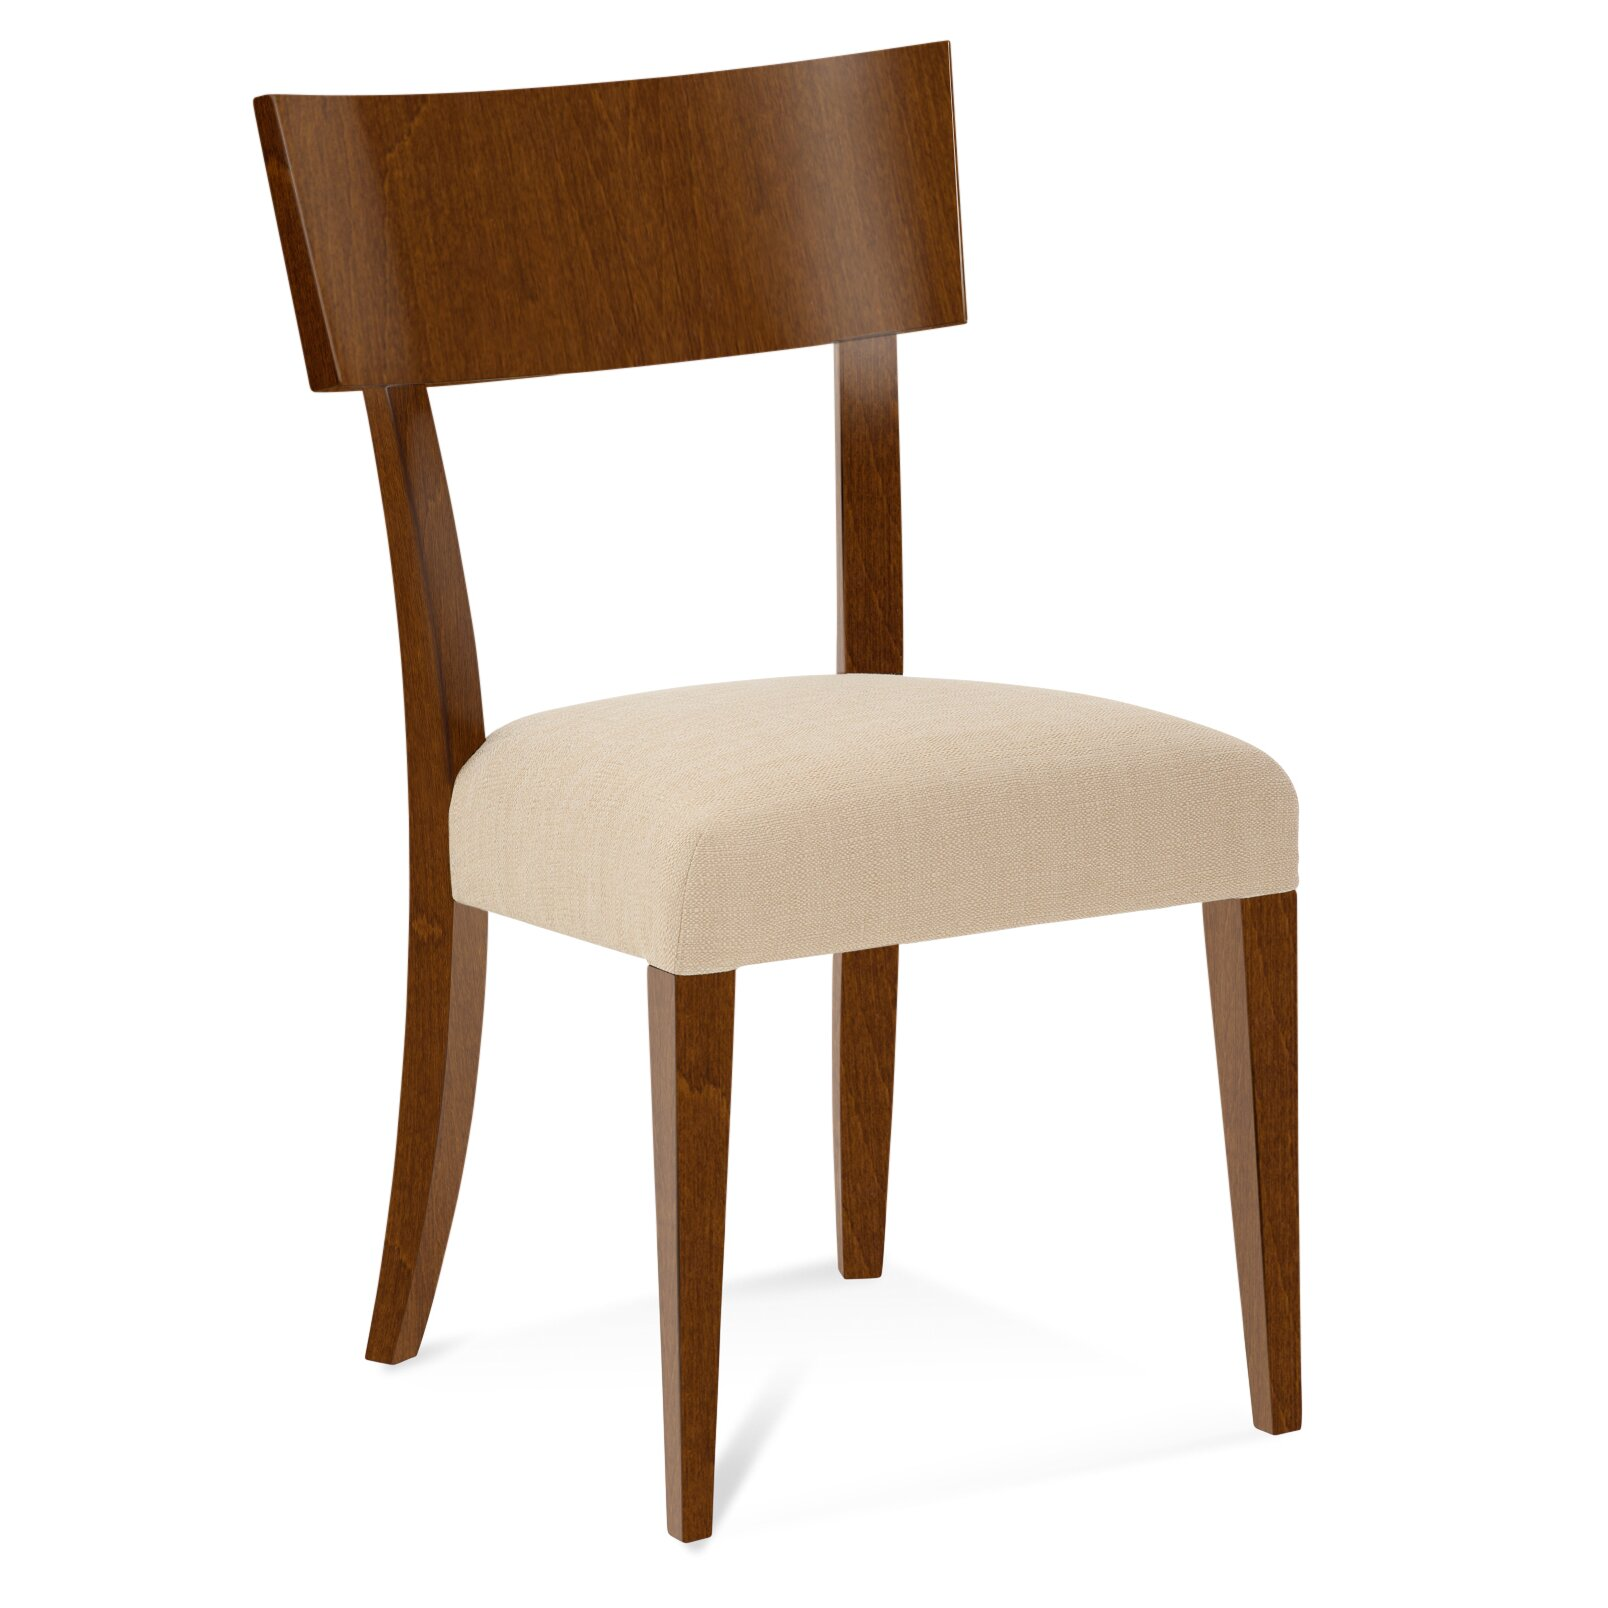 Saloom furniture peter francis side chair reviews wayfair for I furniture reviews